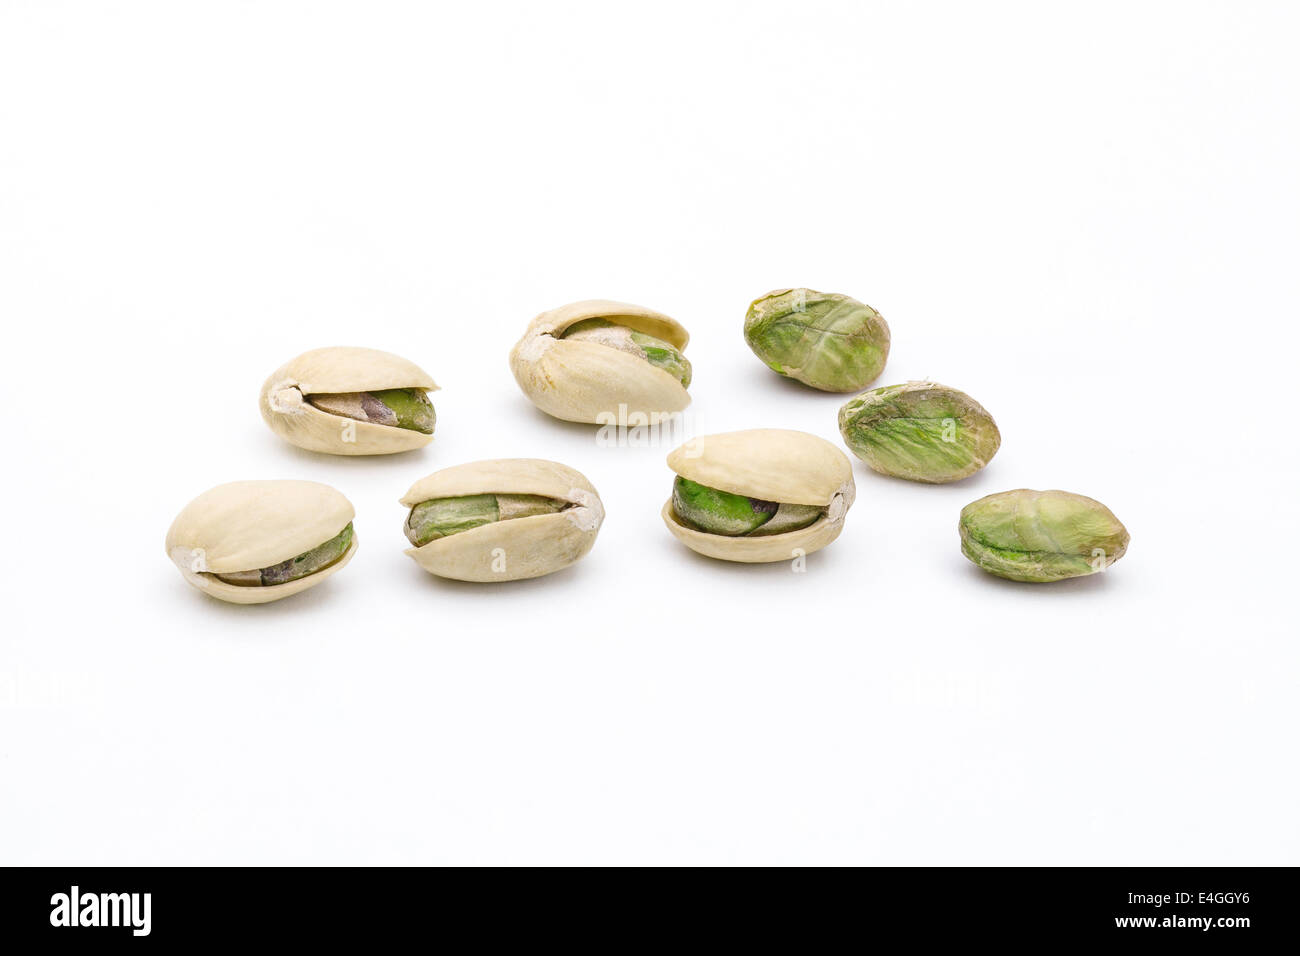 Pistachio nuts and seeds isolated on white background - Stock Image